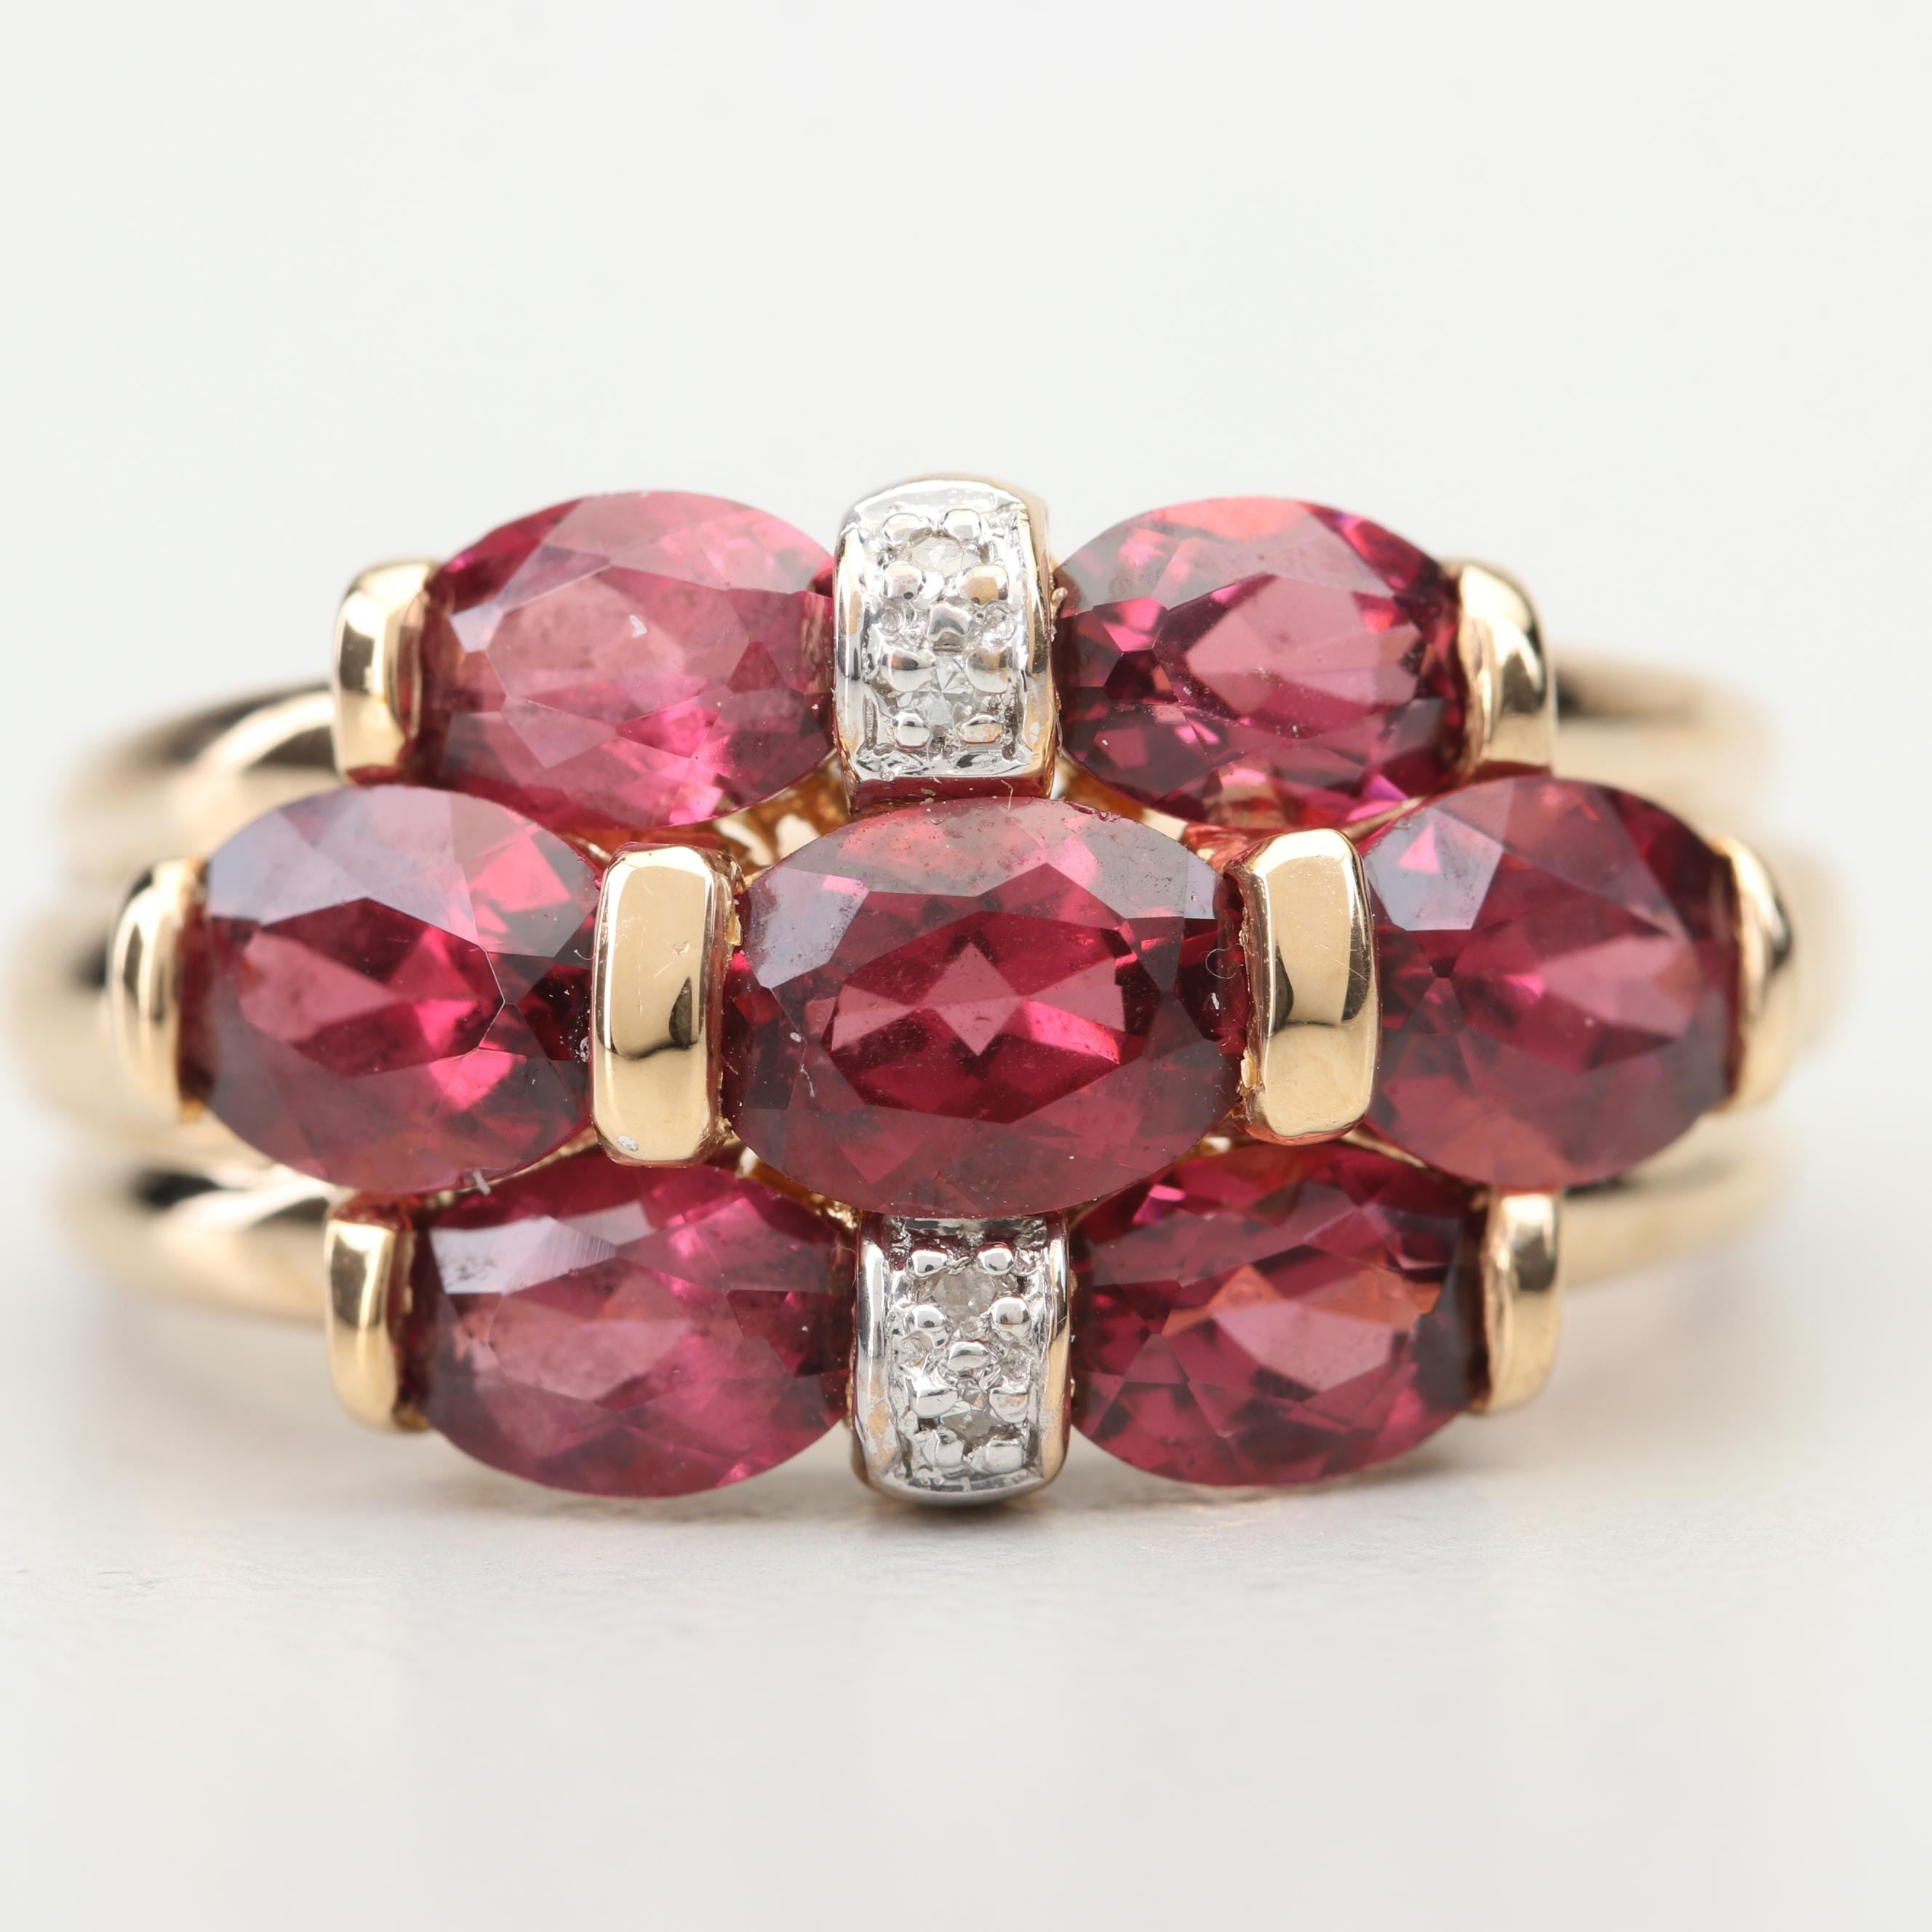 14K Yellow Gold 5.50 CTW Rhodolite Garnet and Diamond Ring